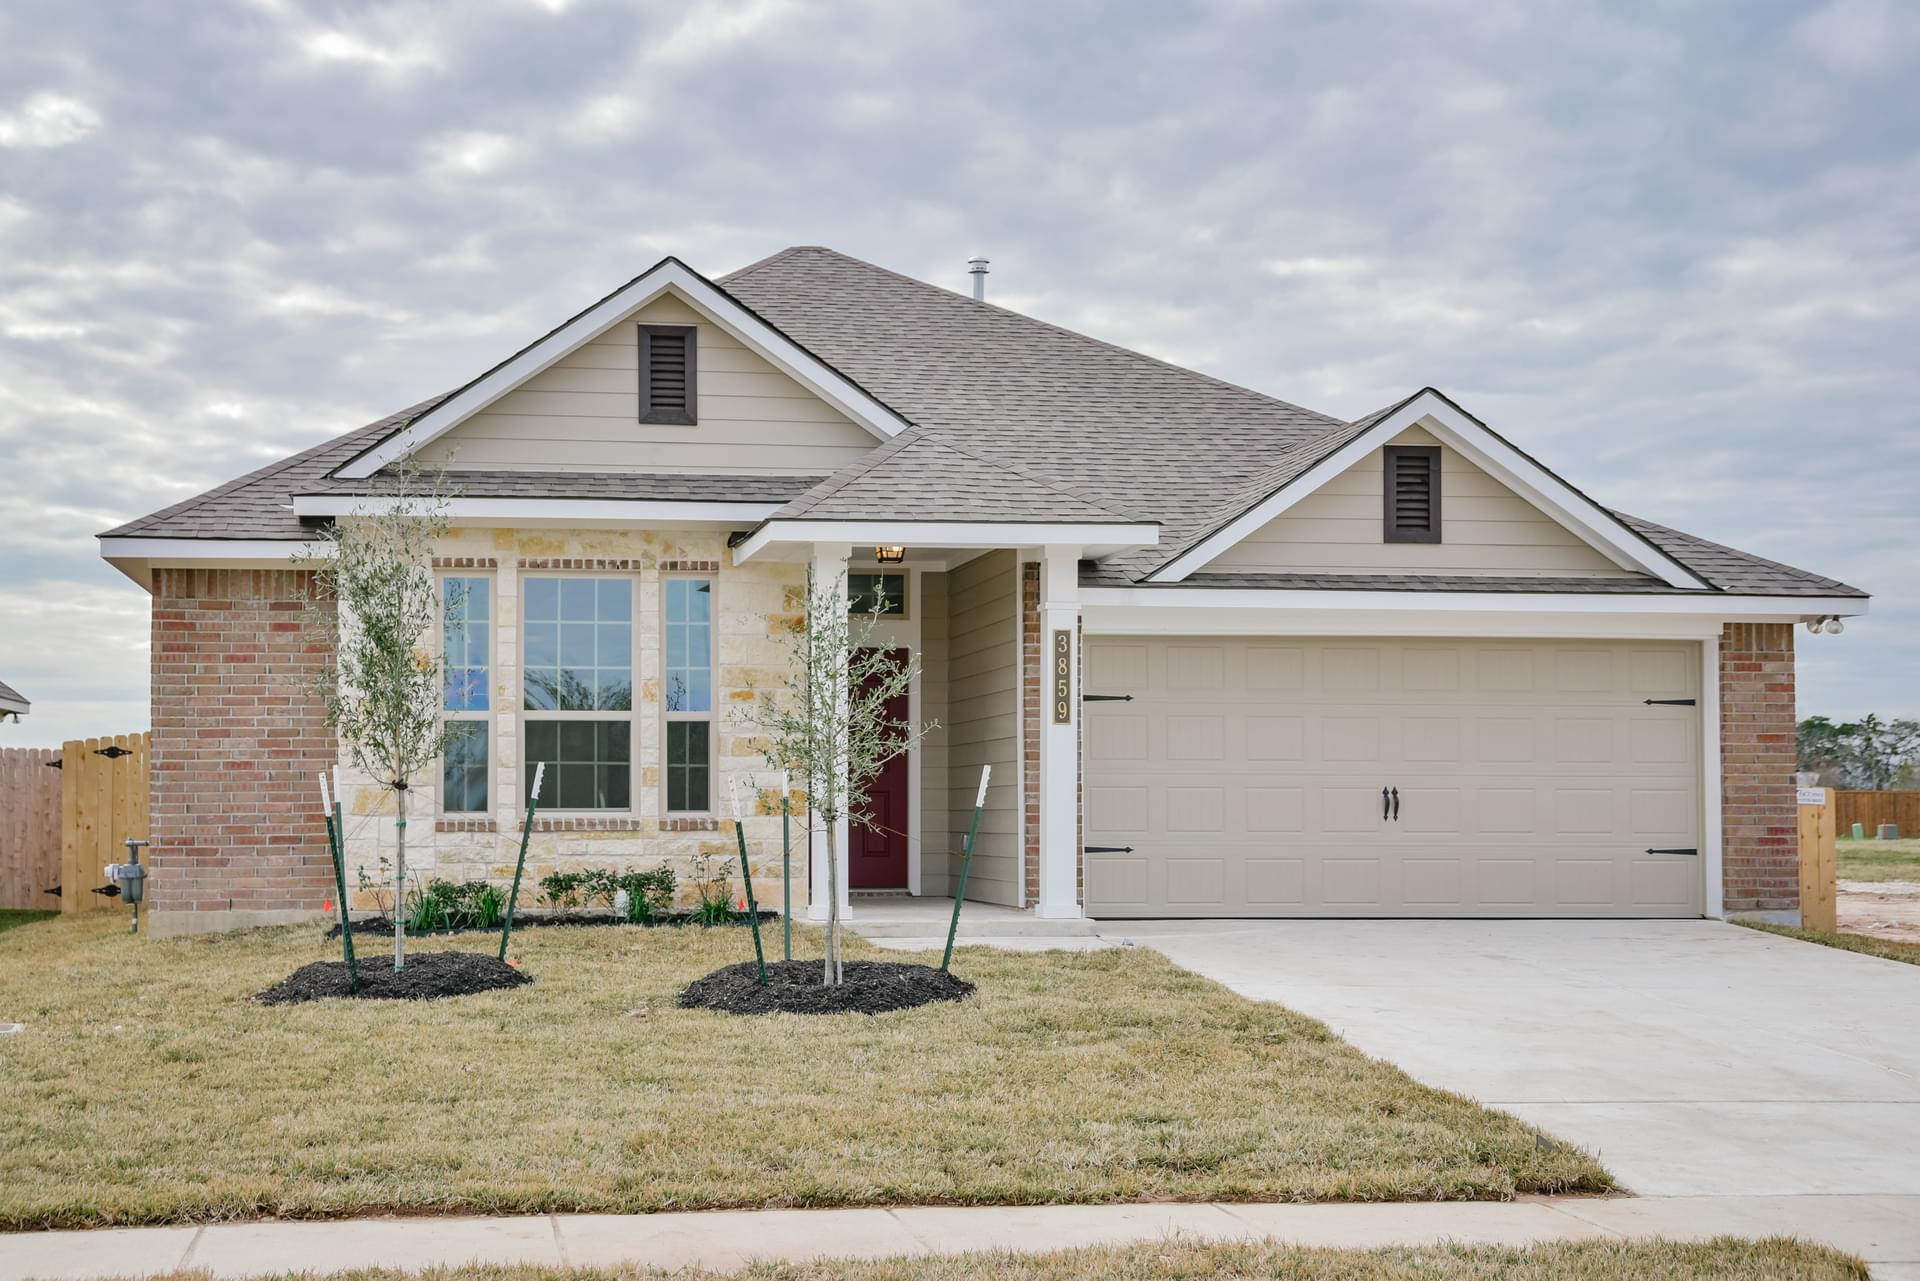 6316 Daytona Drive in College Station, TX